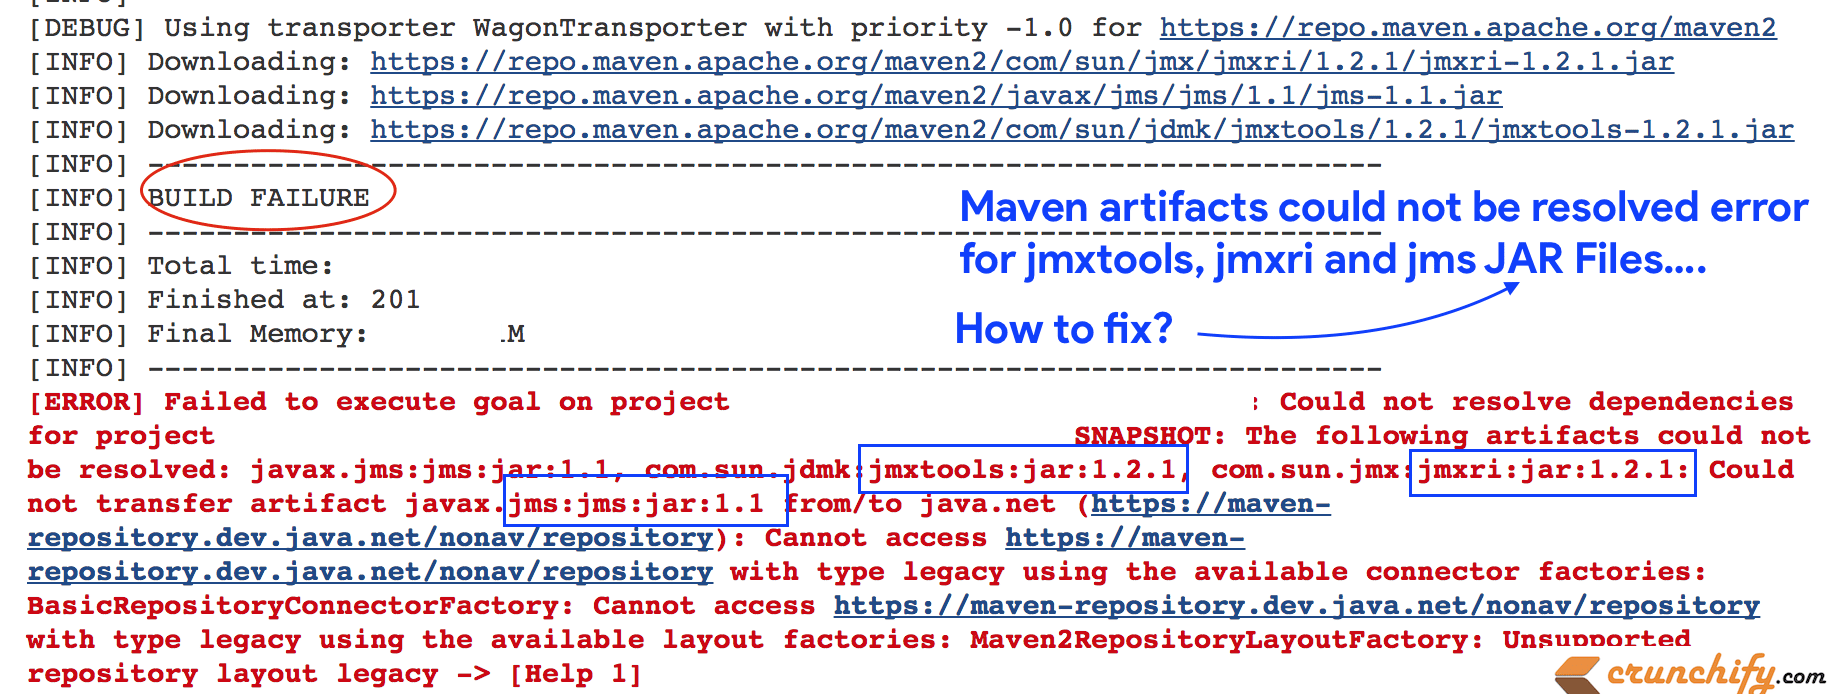 How to Fix Maven Artifacts Could not be Resolved Error